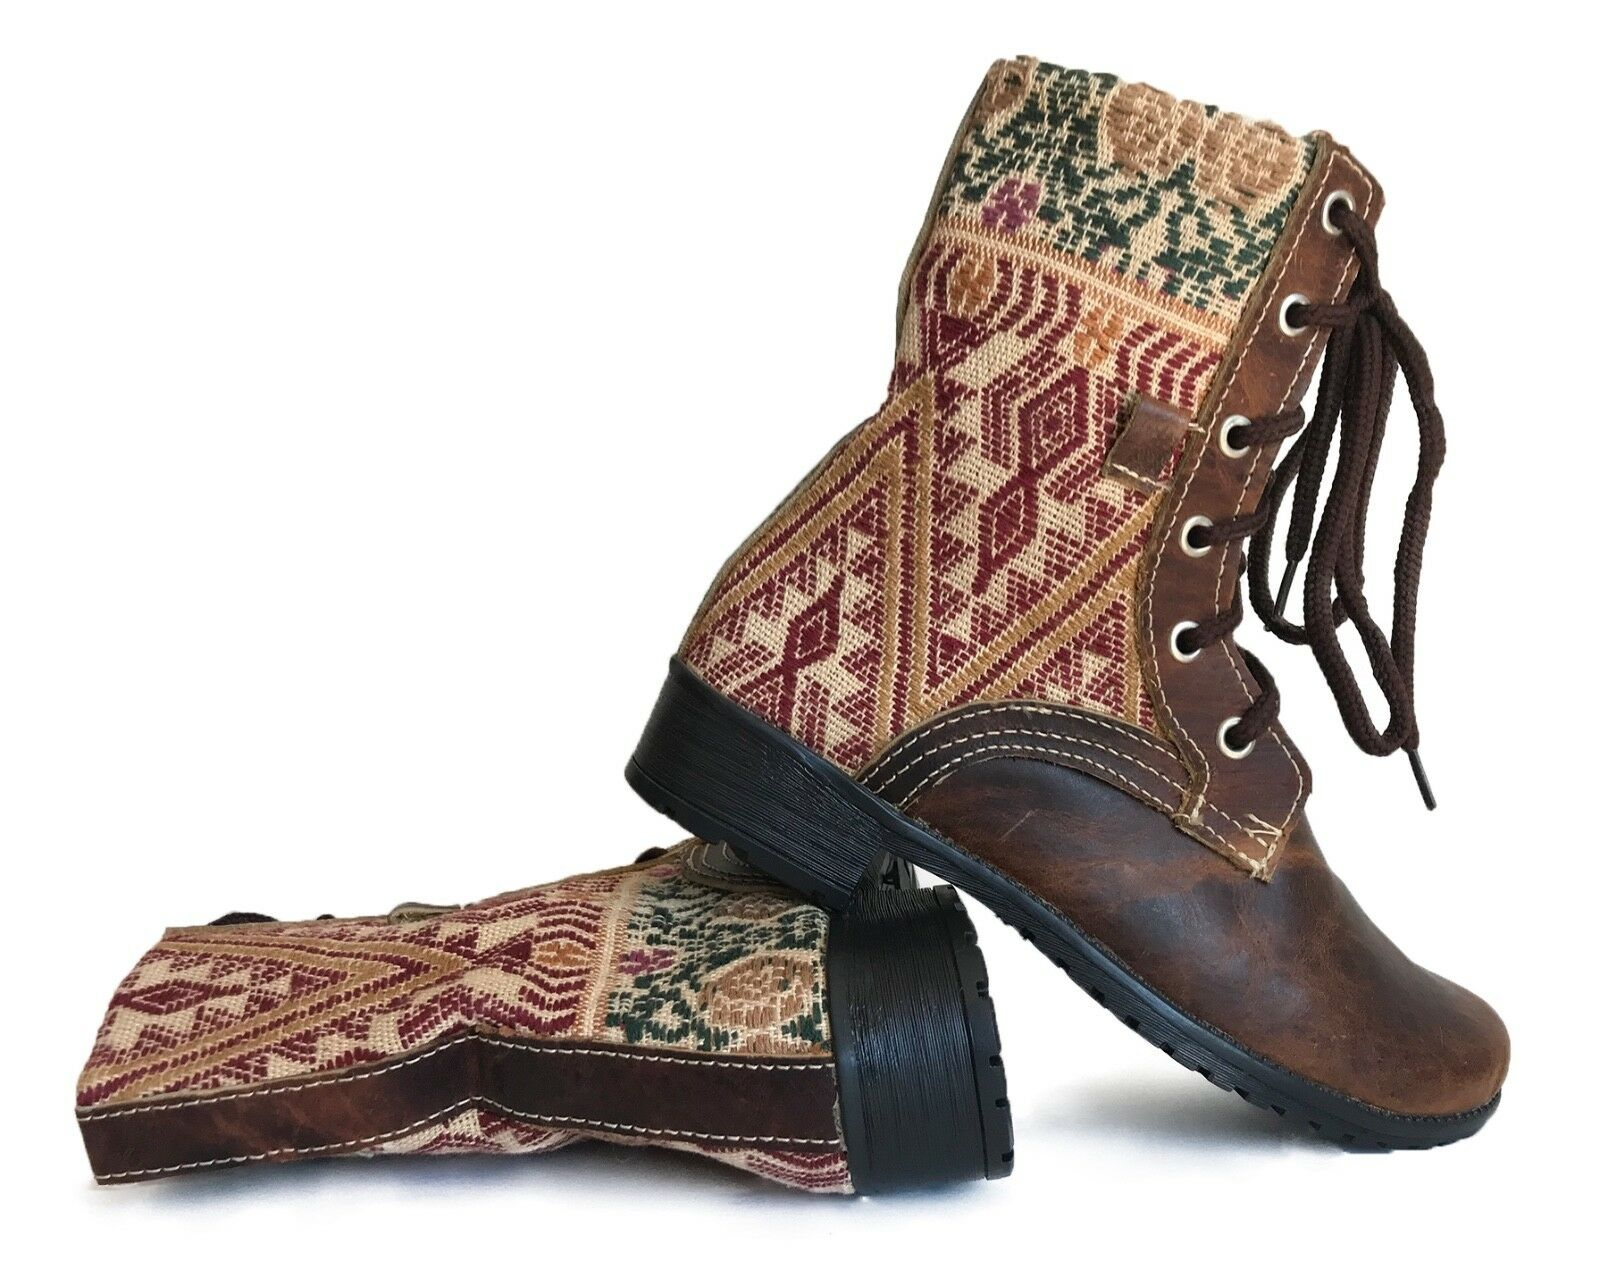 Size 33 Euro - Guatemalan boots, combat boots, lace up boots, handmade boots